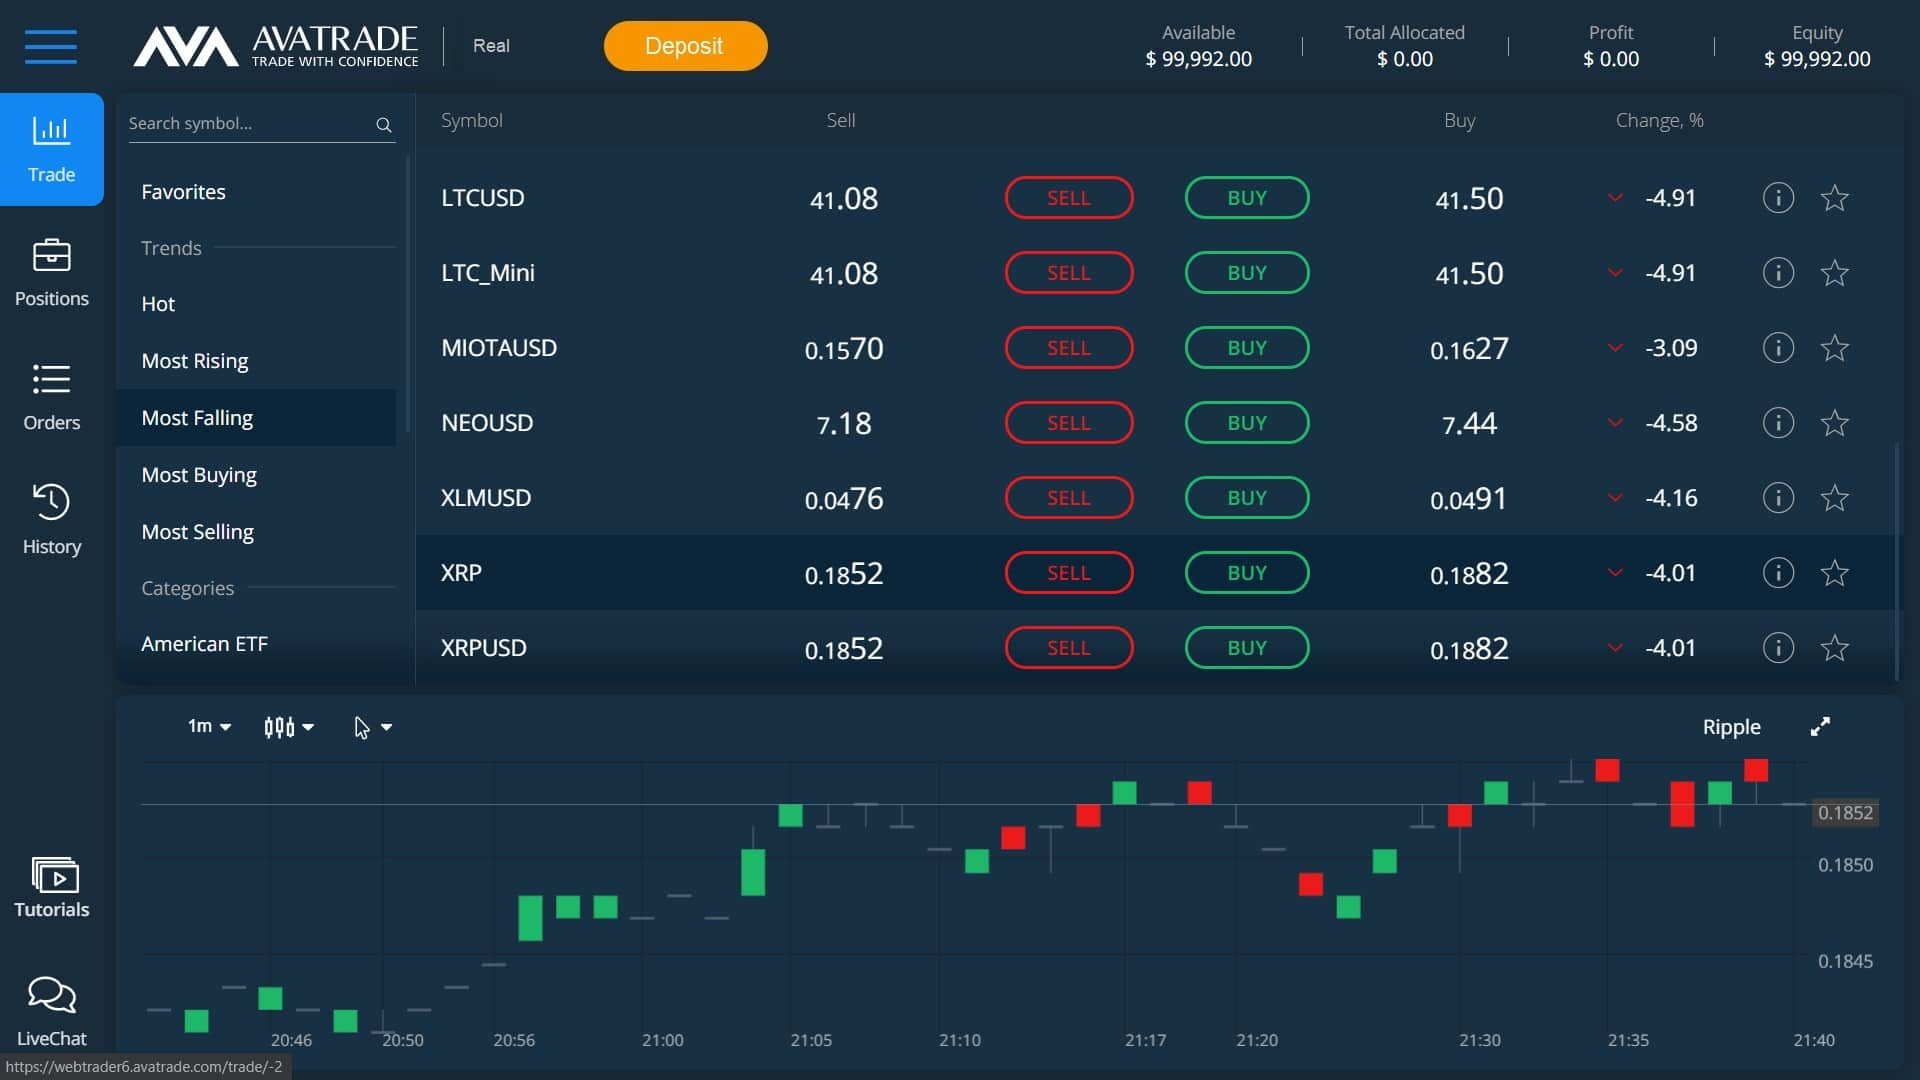 Ripple trading on AvaTrade's WebTrader platform